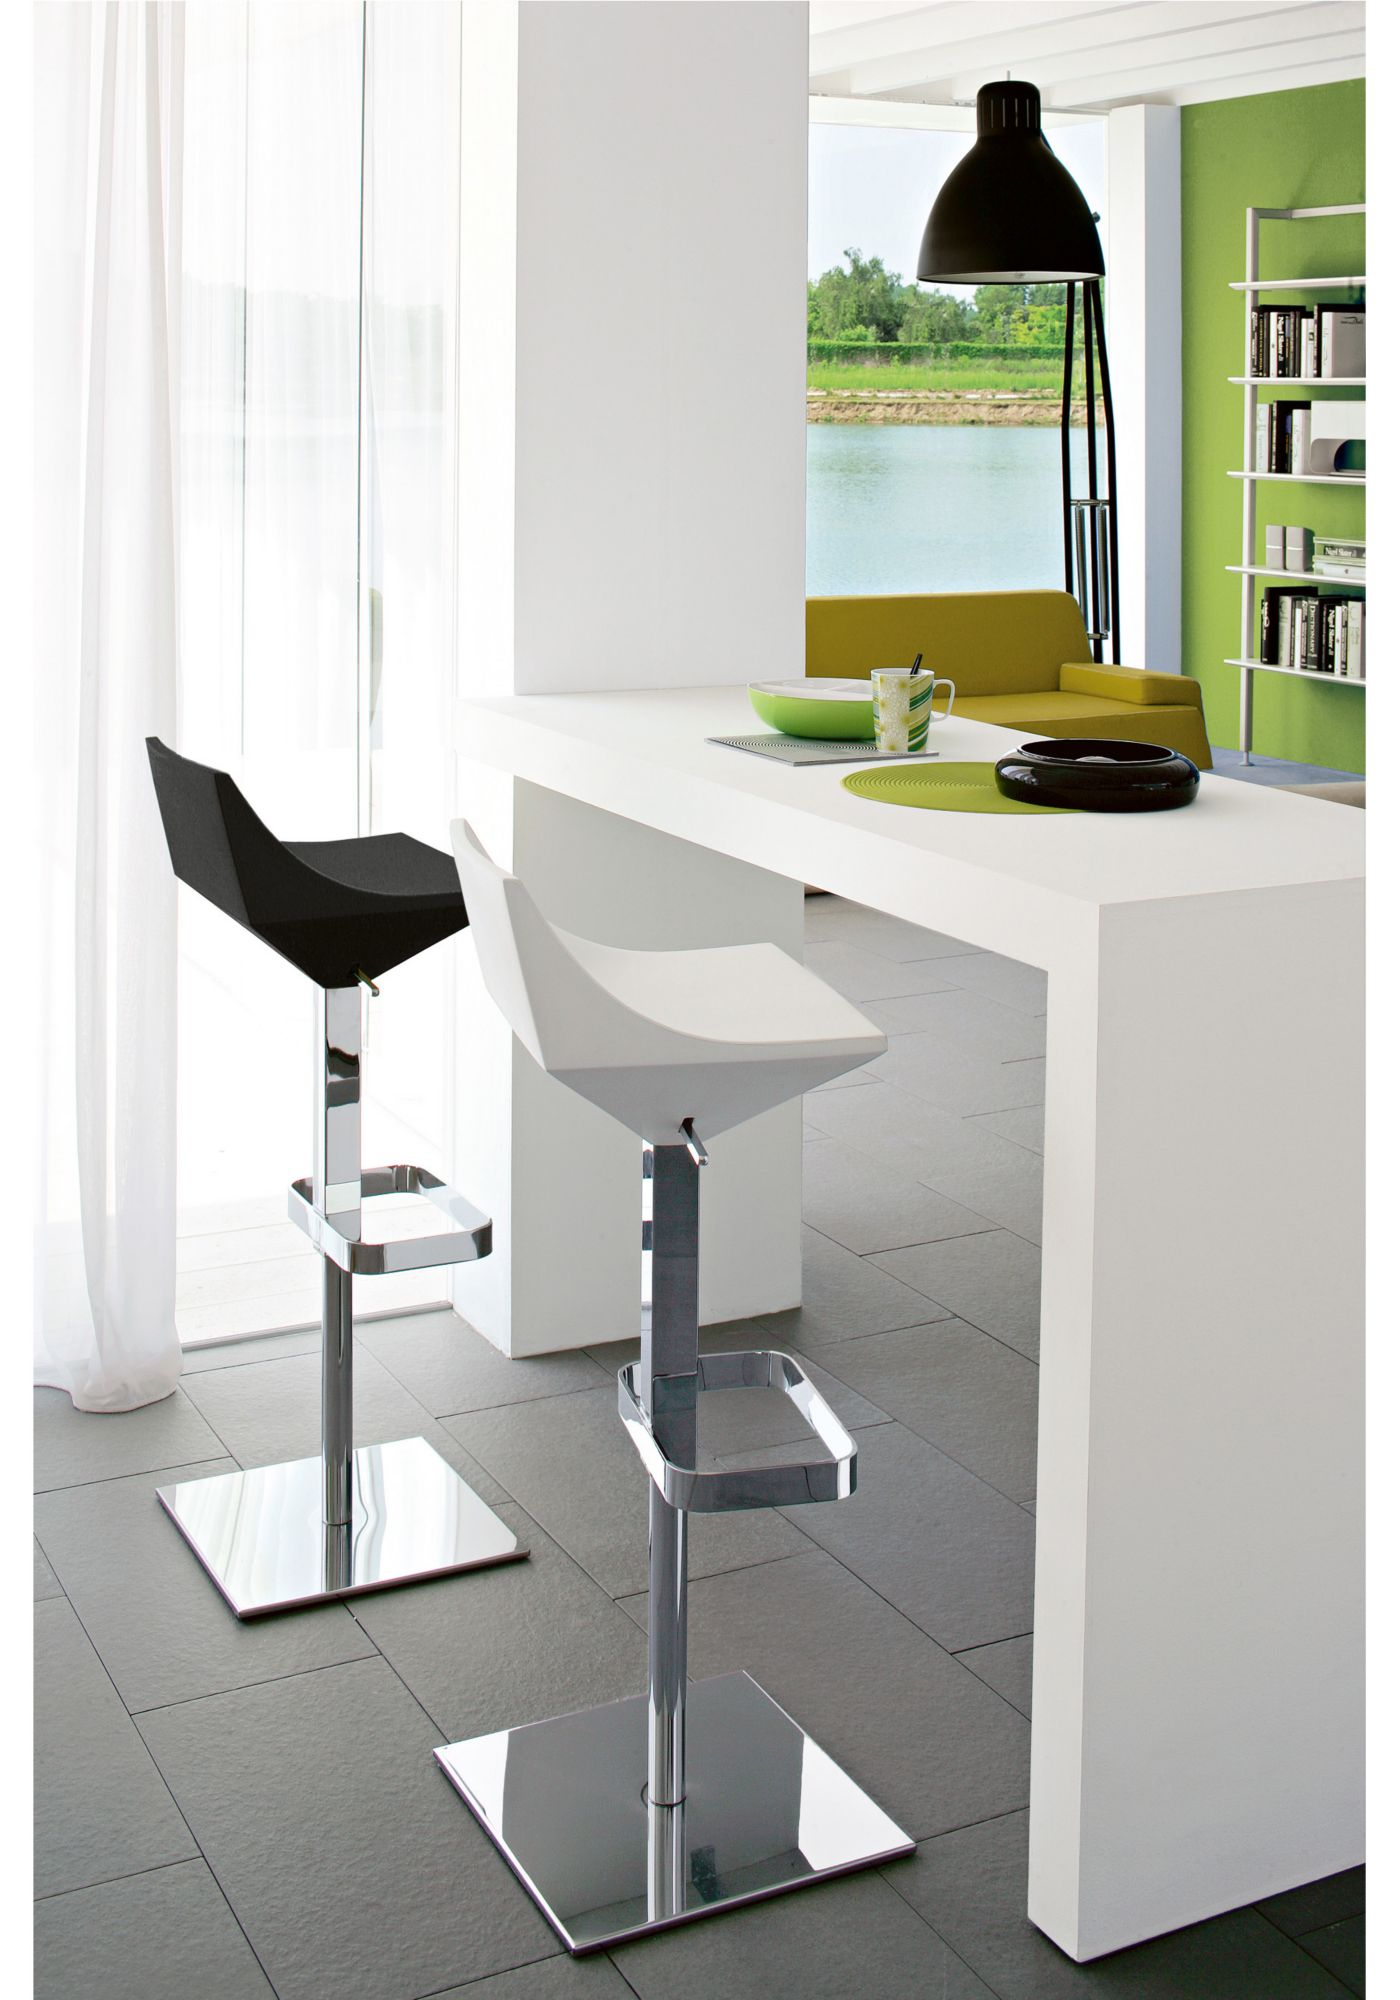 CONNUBIA BY CALLIGARIS connubia by calligaris Barhocker »Fly«